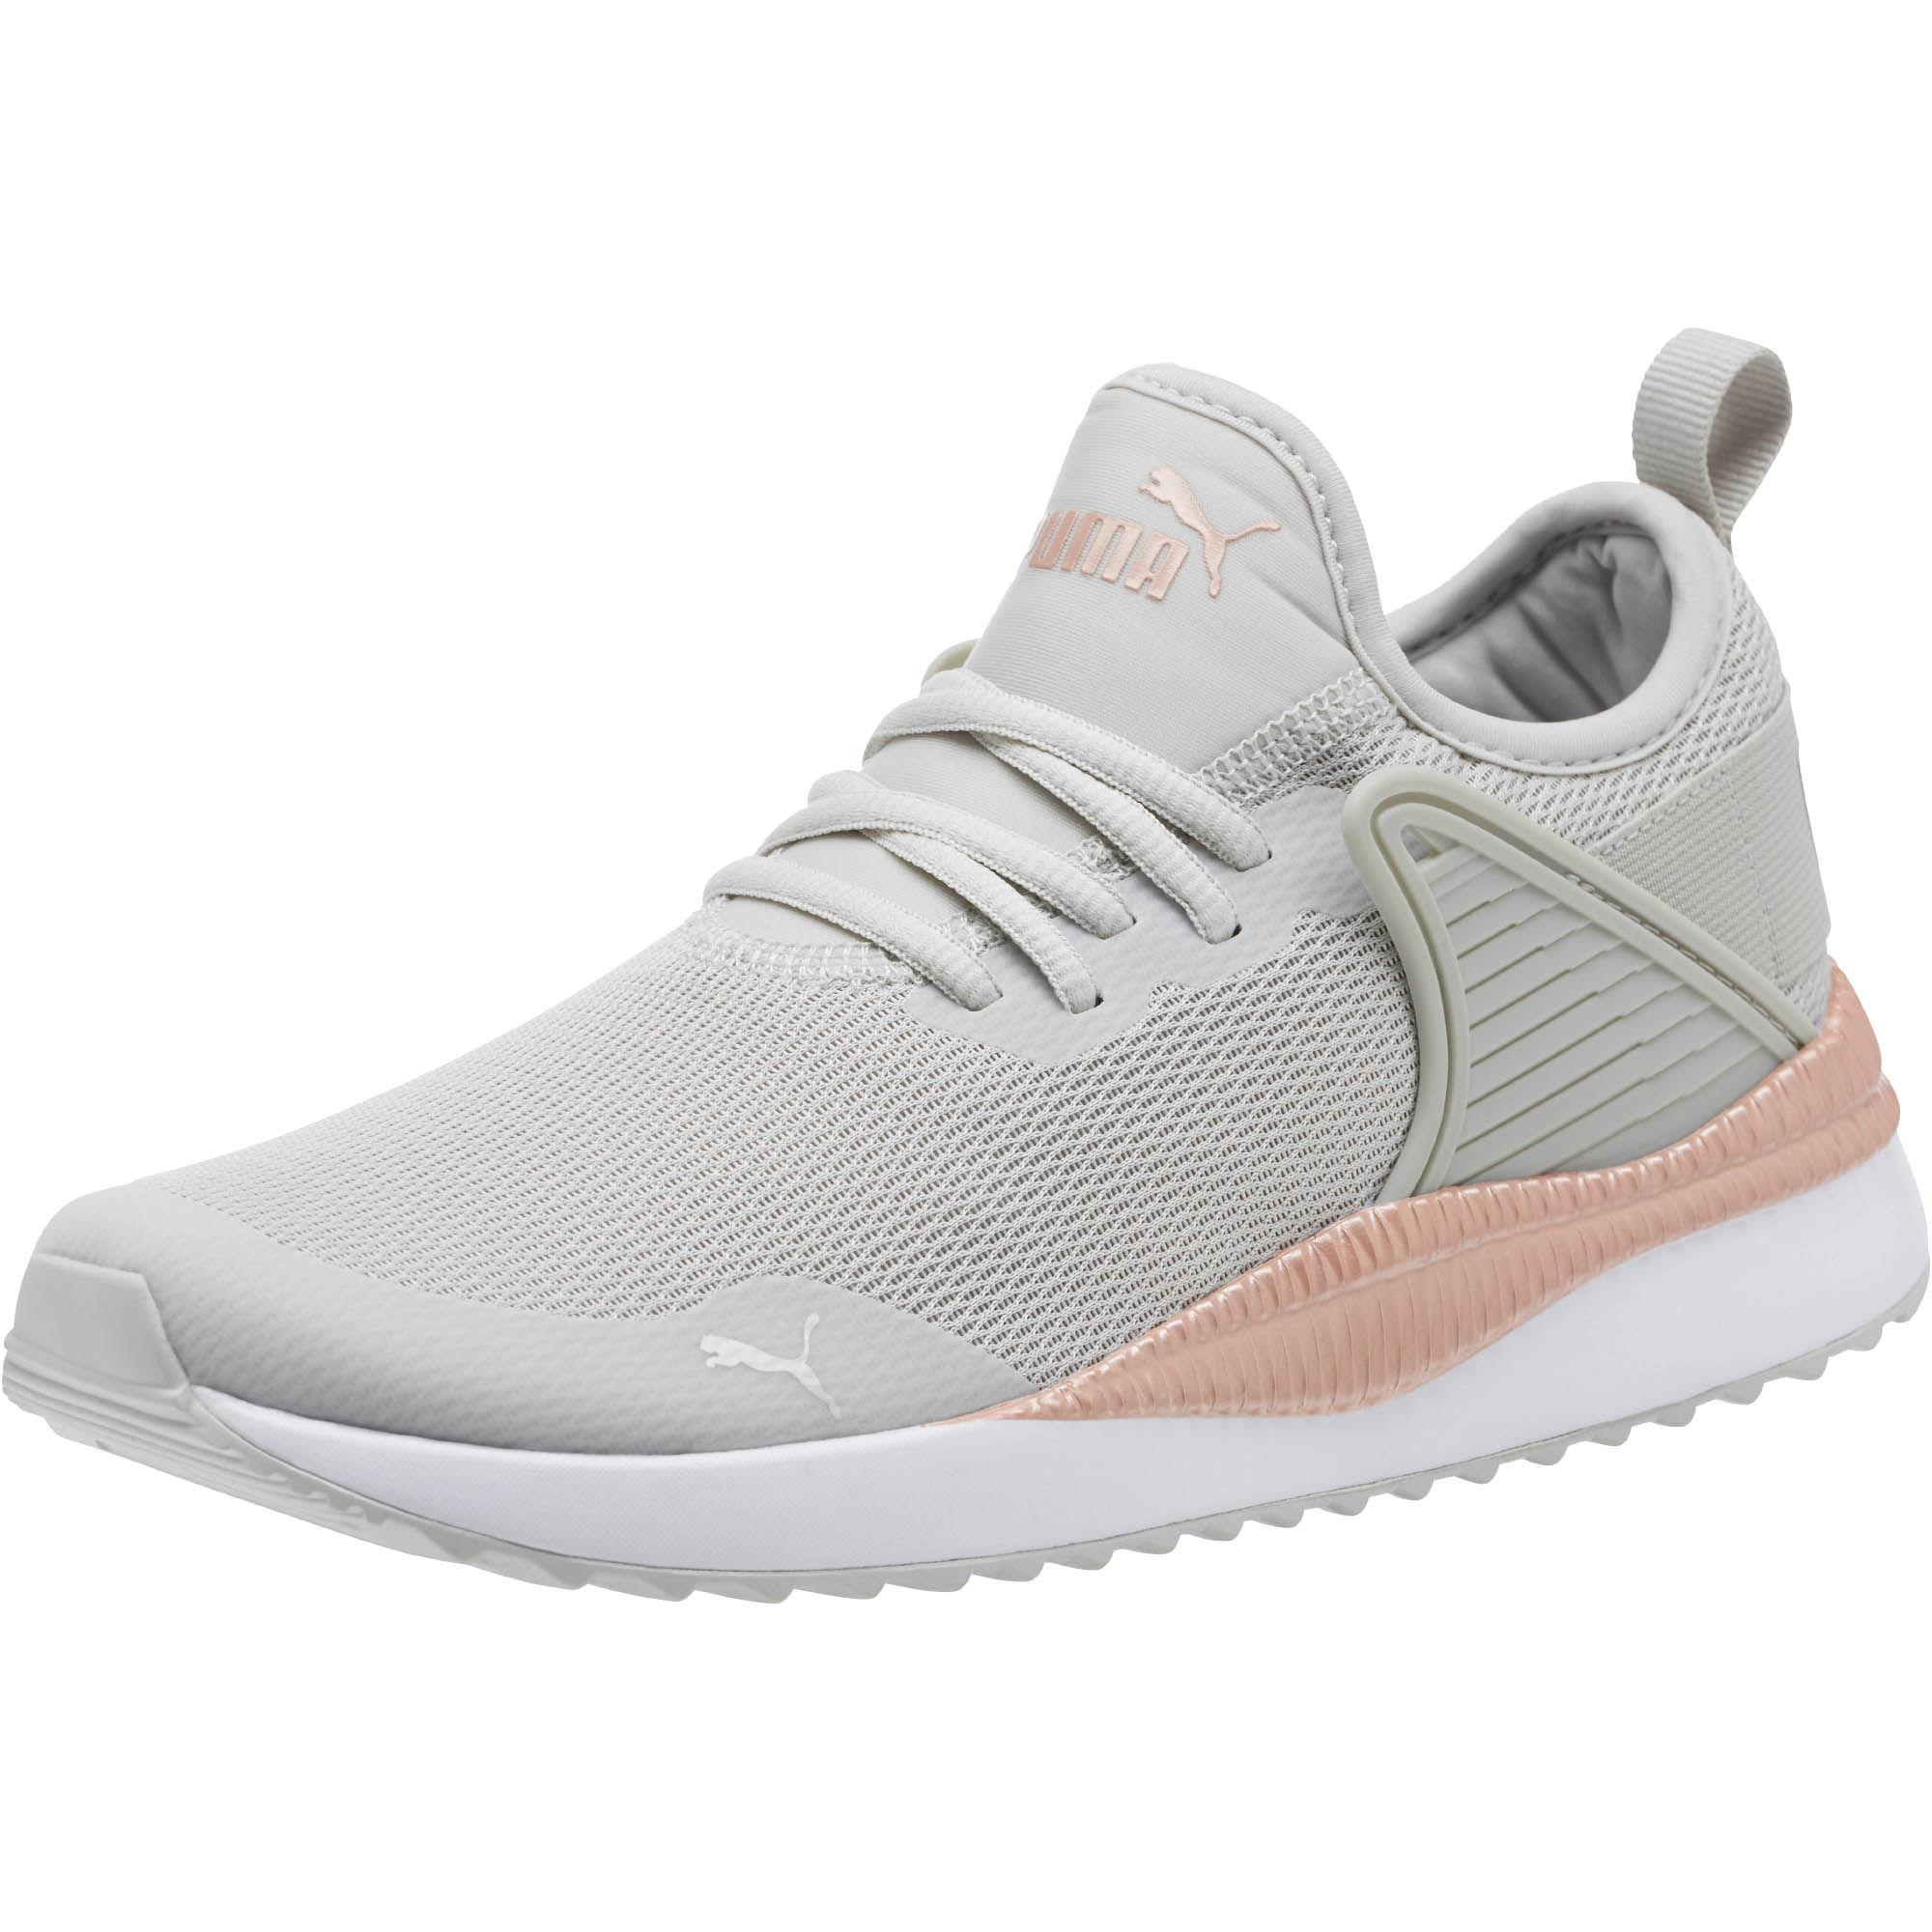 Lyst - PUMA Pacer Next Cage Metallic Wns in Metallic 6b23ce30b